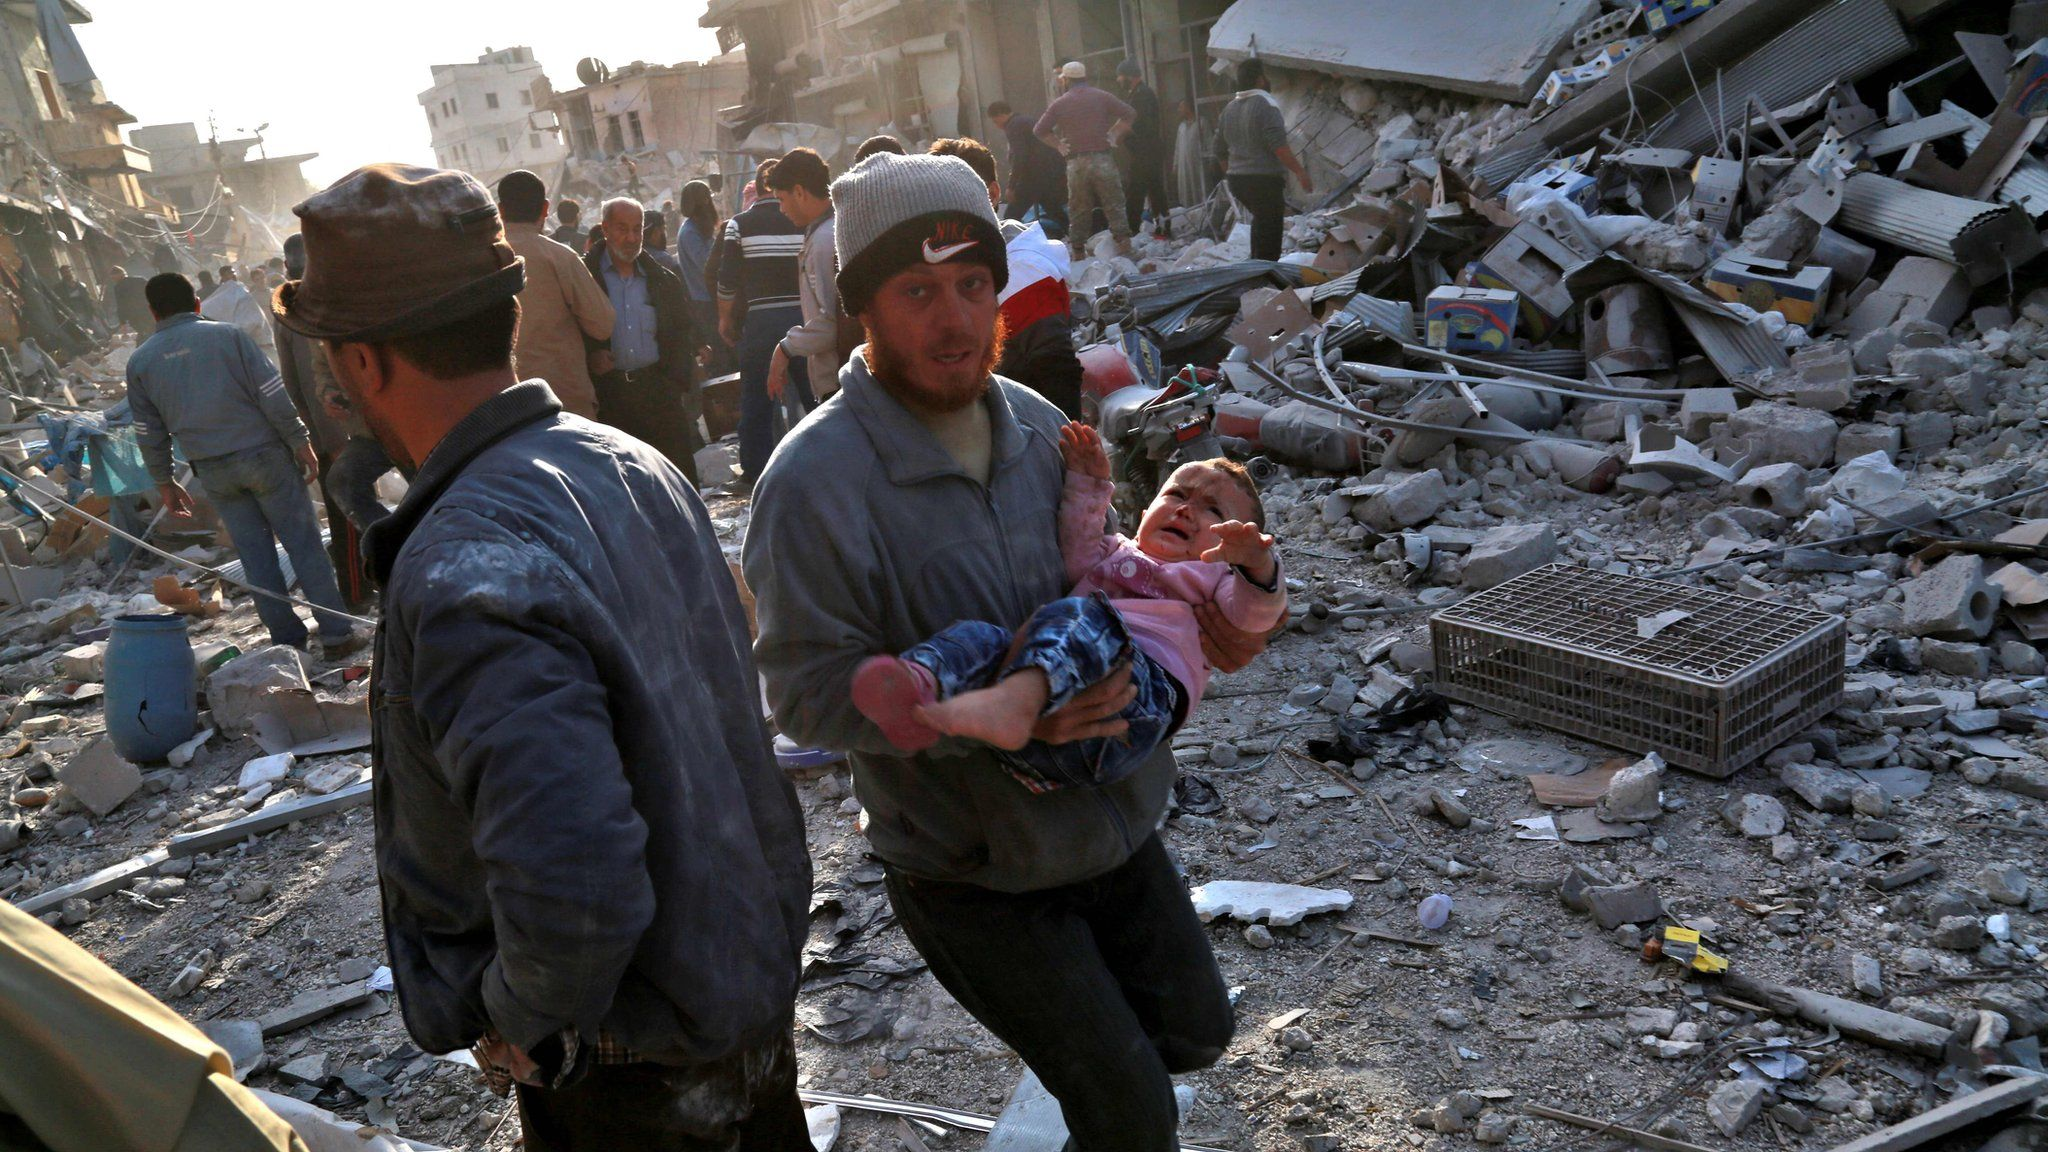 A Syrian man carries a child following a reported air strike on the rebel-held town of Atareb in northern Syria on 13 November 2017